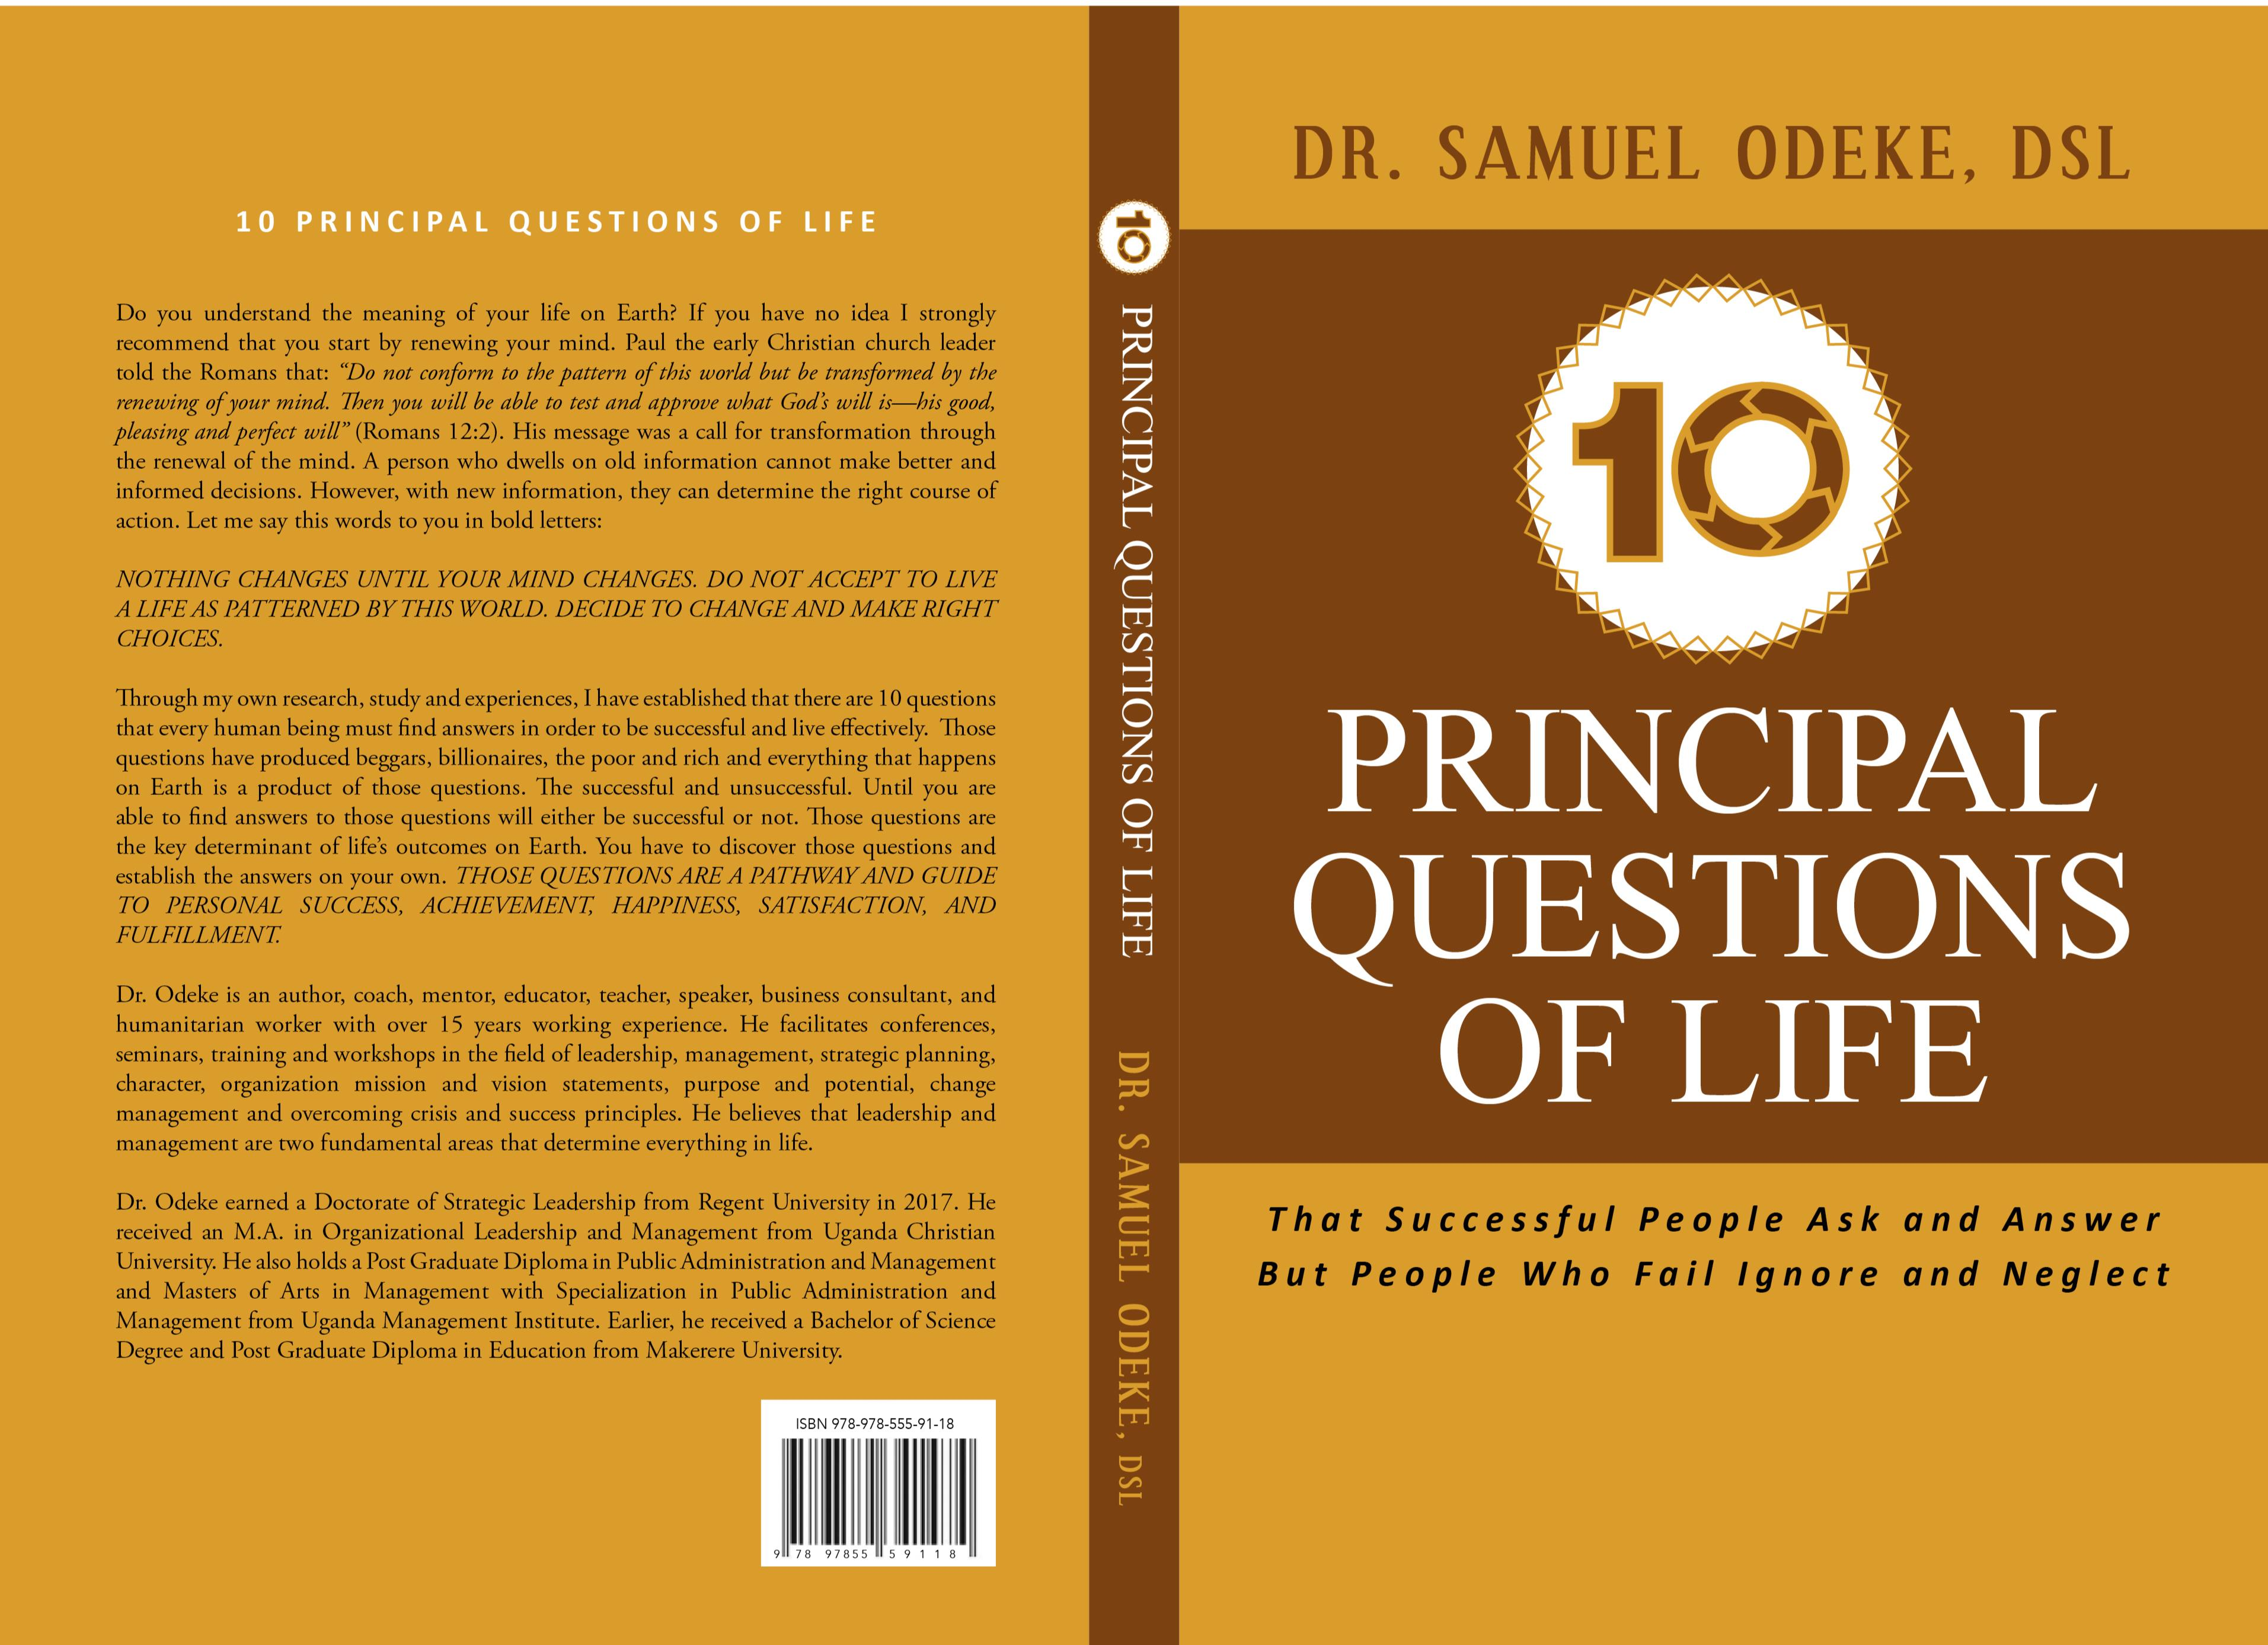 10 PRINCIPAL QUESTIONS OF LIFE: That Successful People Ask and Answer but People Who Fail Ignore and Neglect cover image